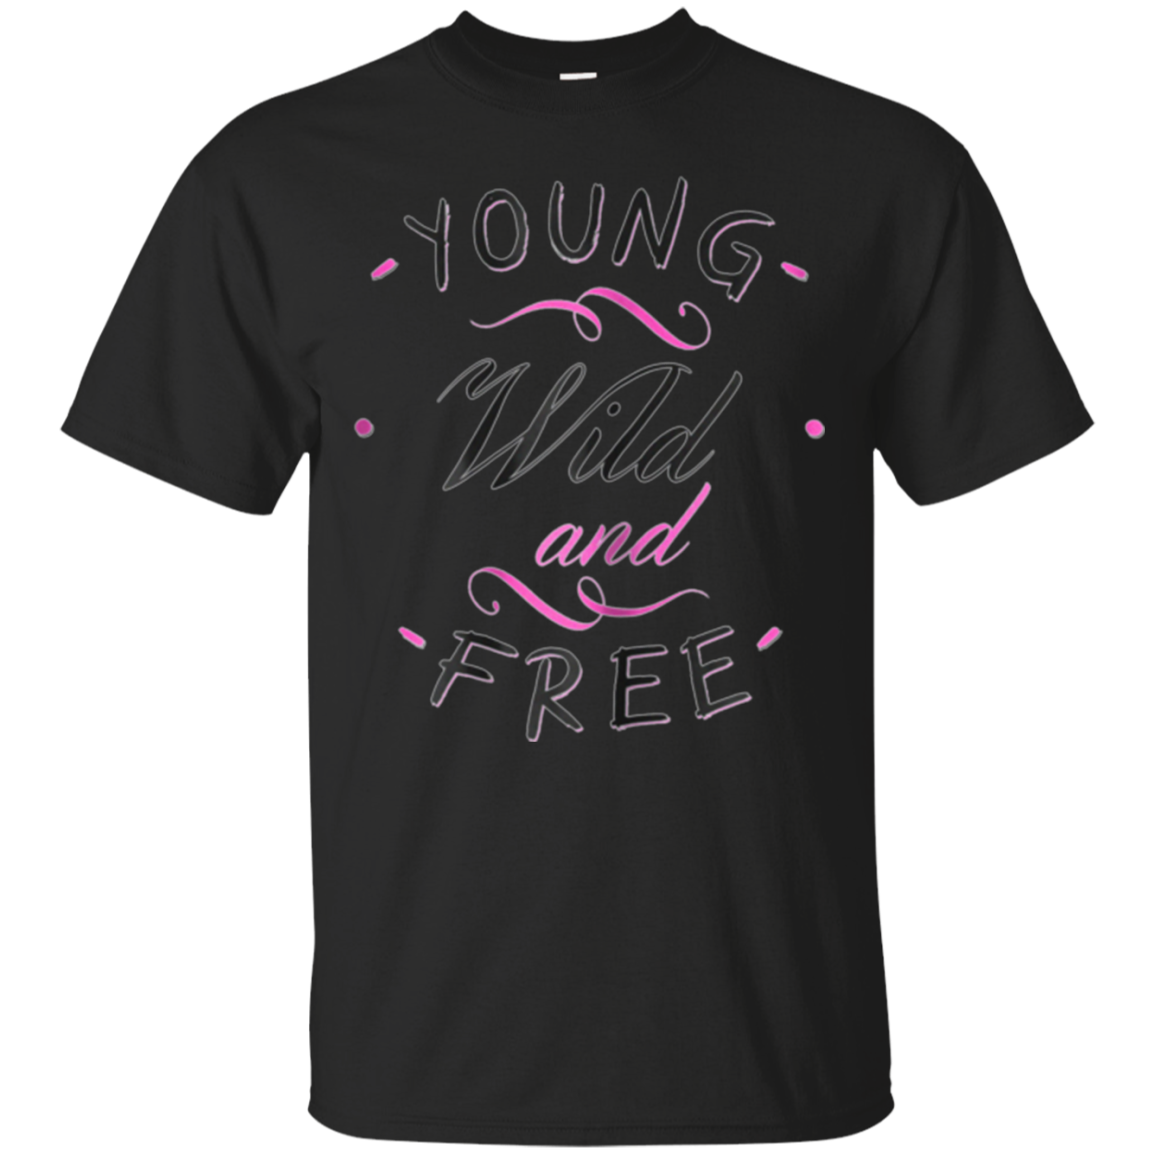 Young wild and free T-Shirt. Tshirt with sayings women